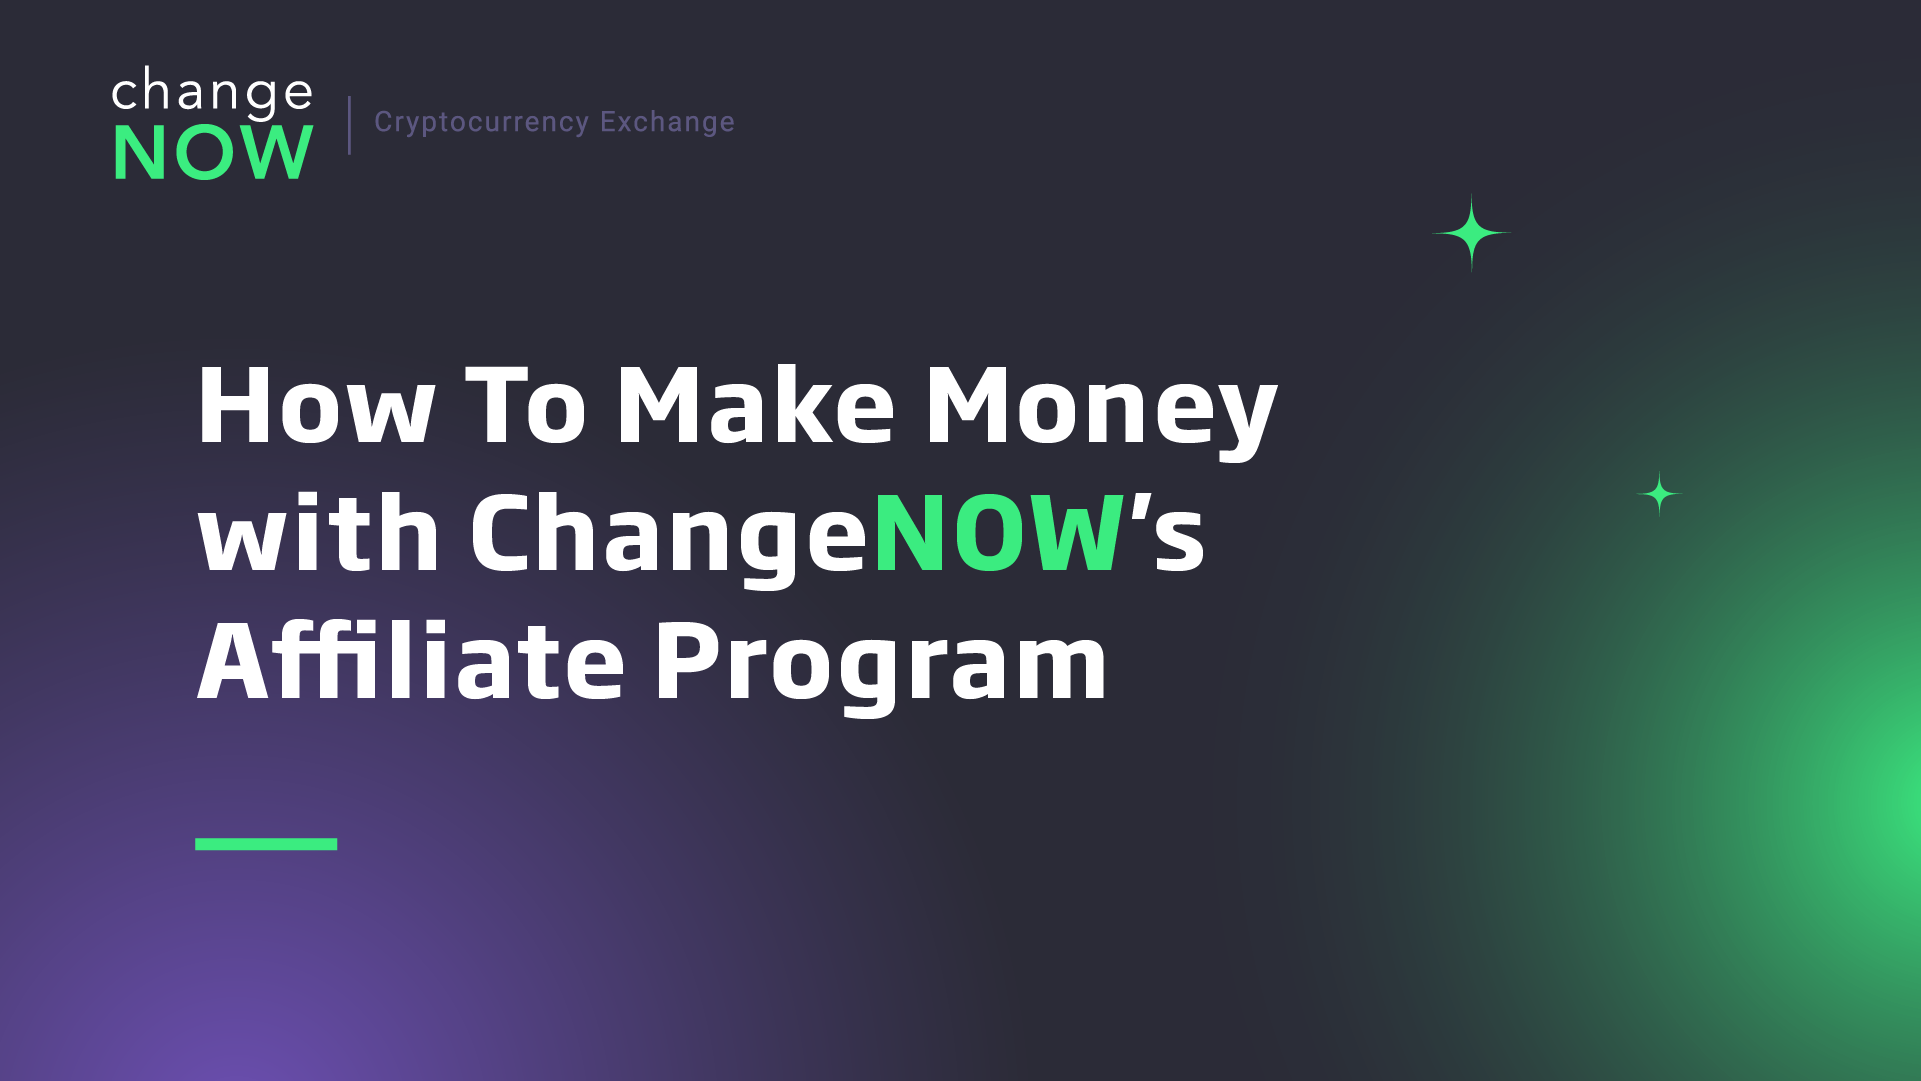 How To Make Money with ChangeNOW's Affiliate Program [GUIDE]